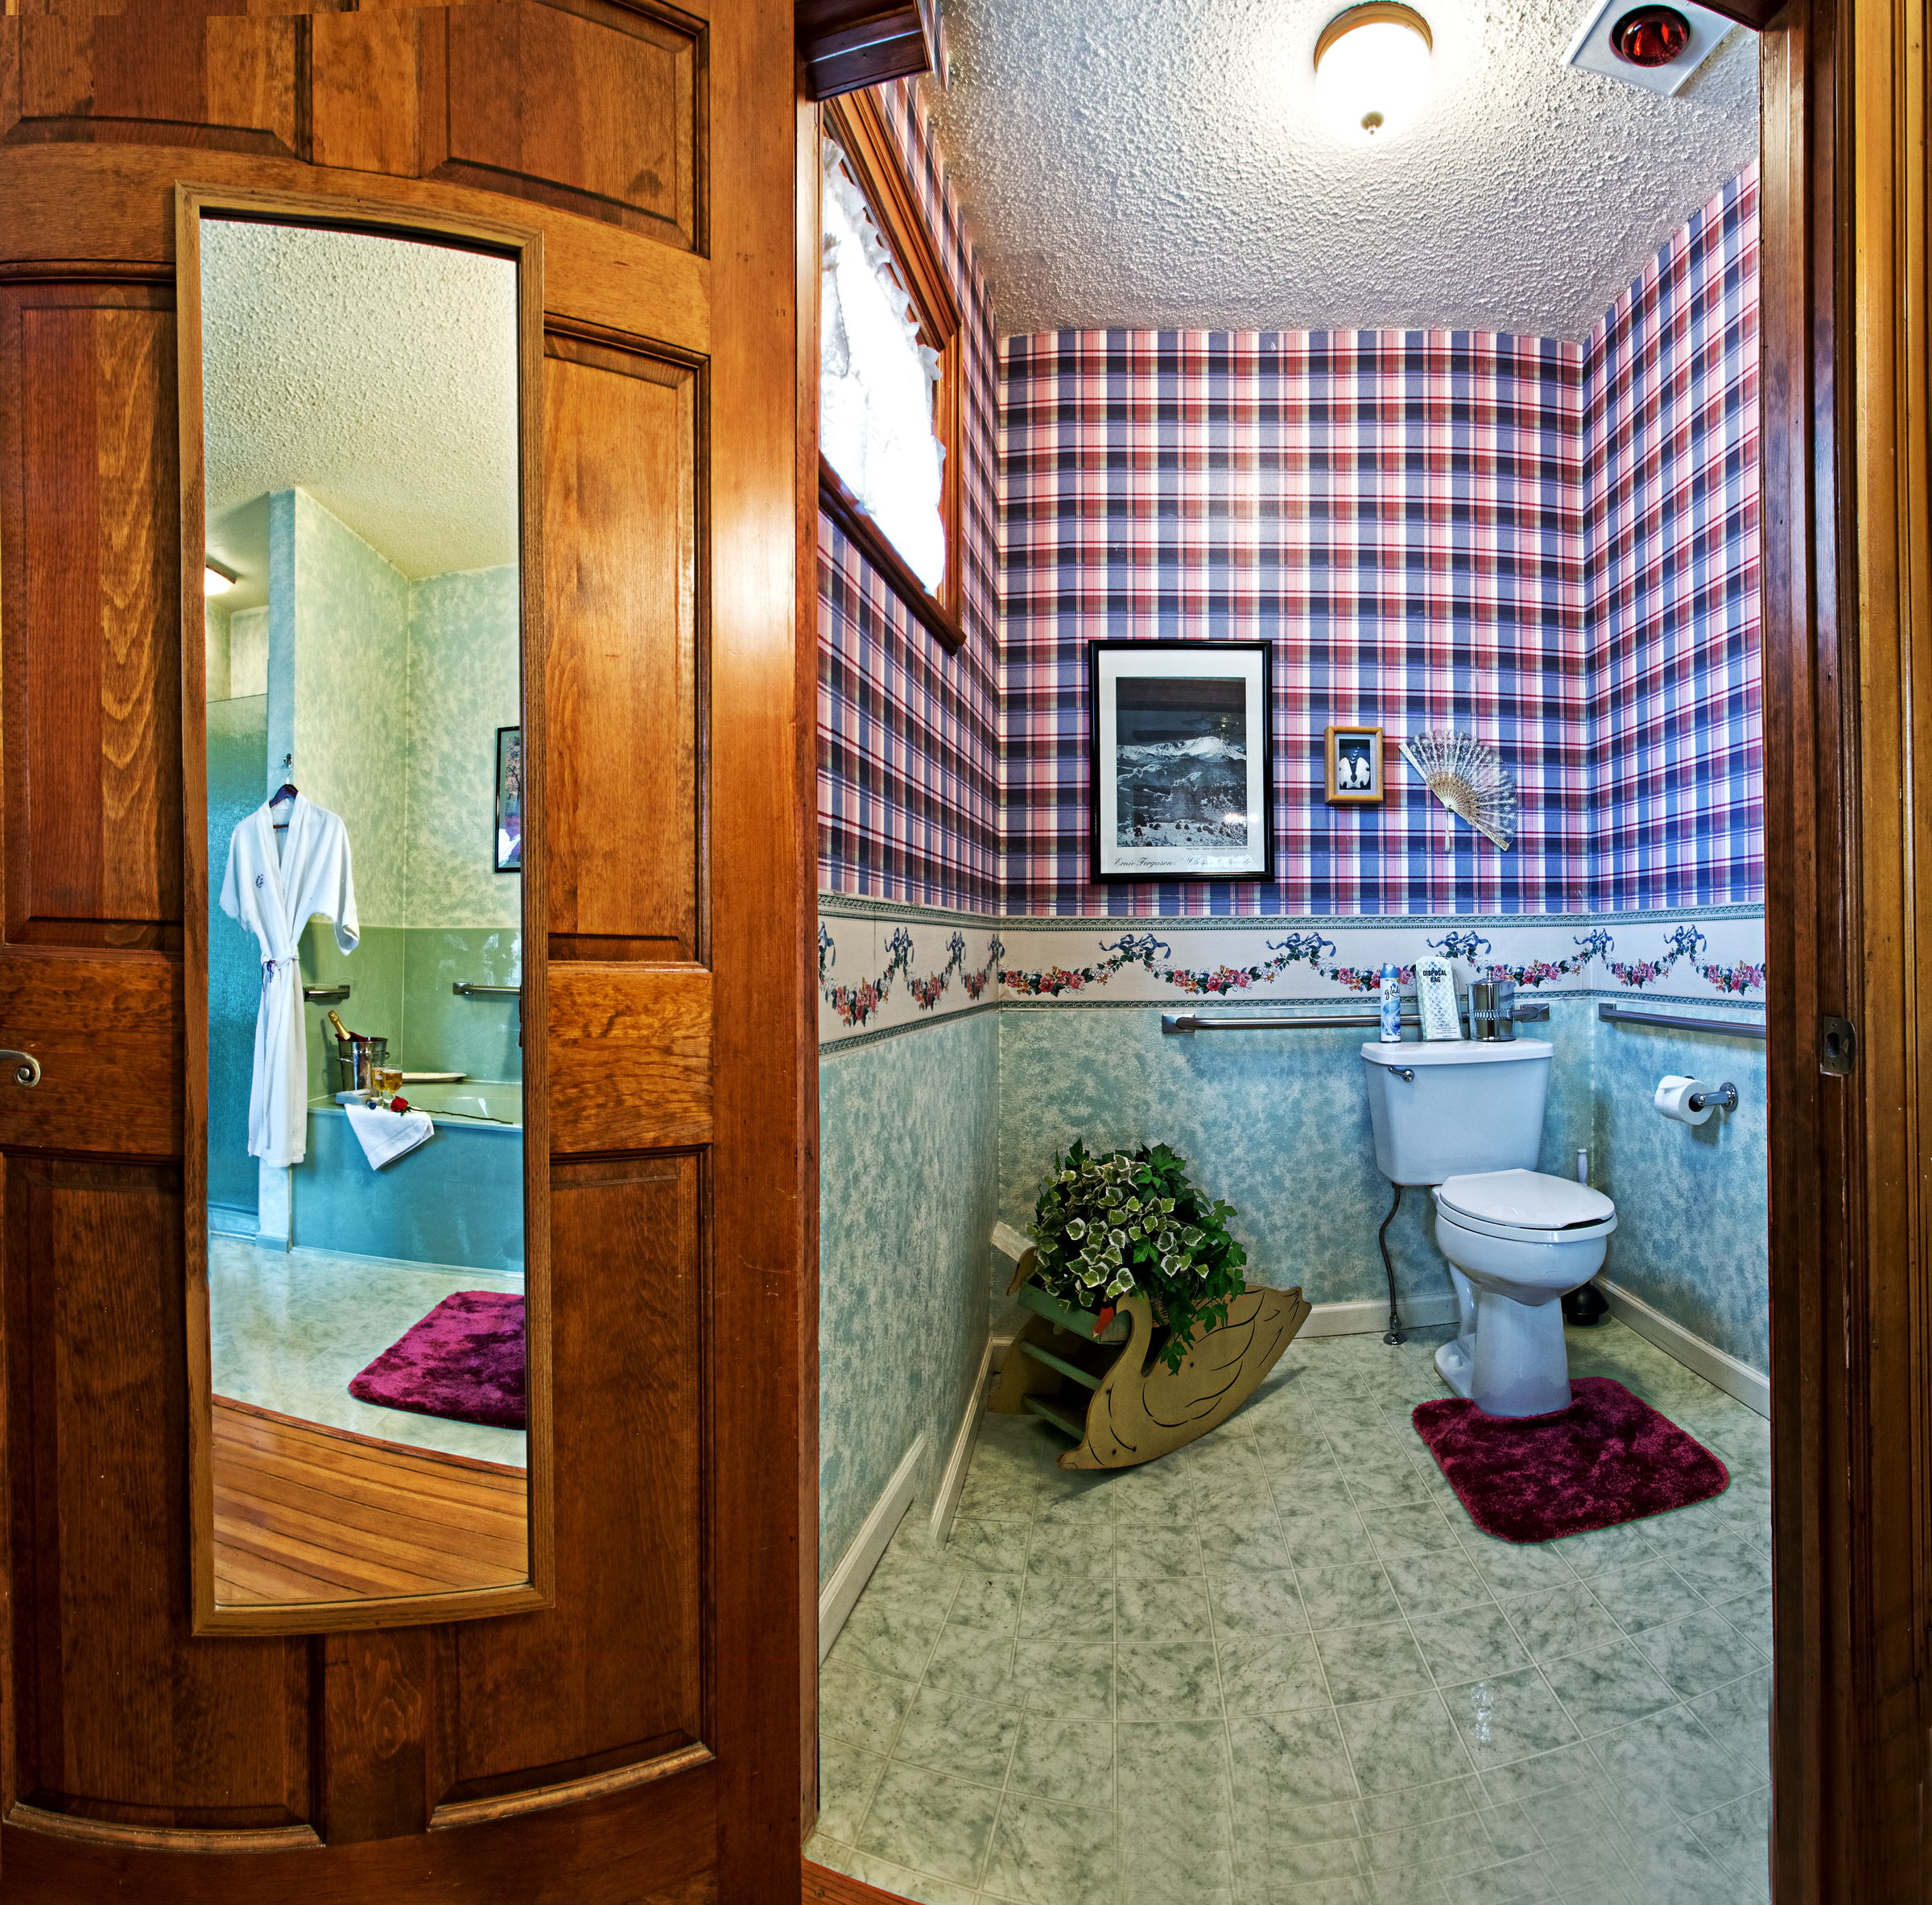 Picture of bathroom.